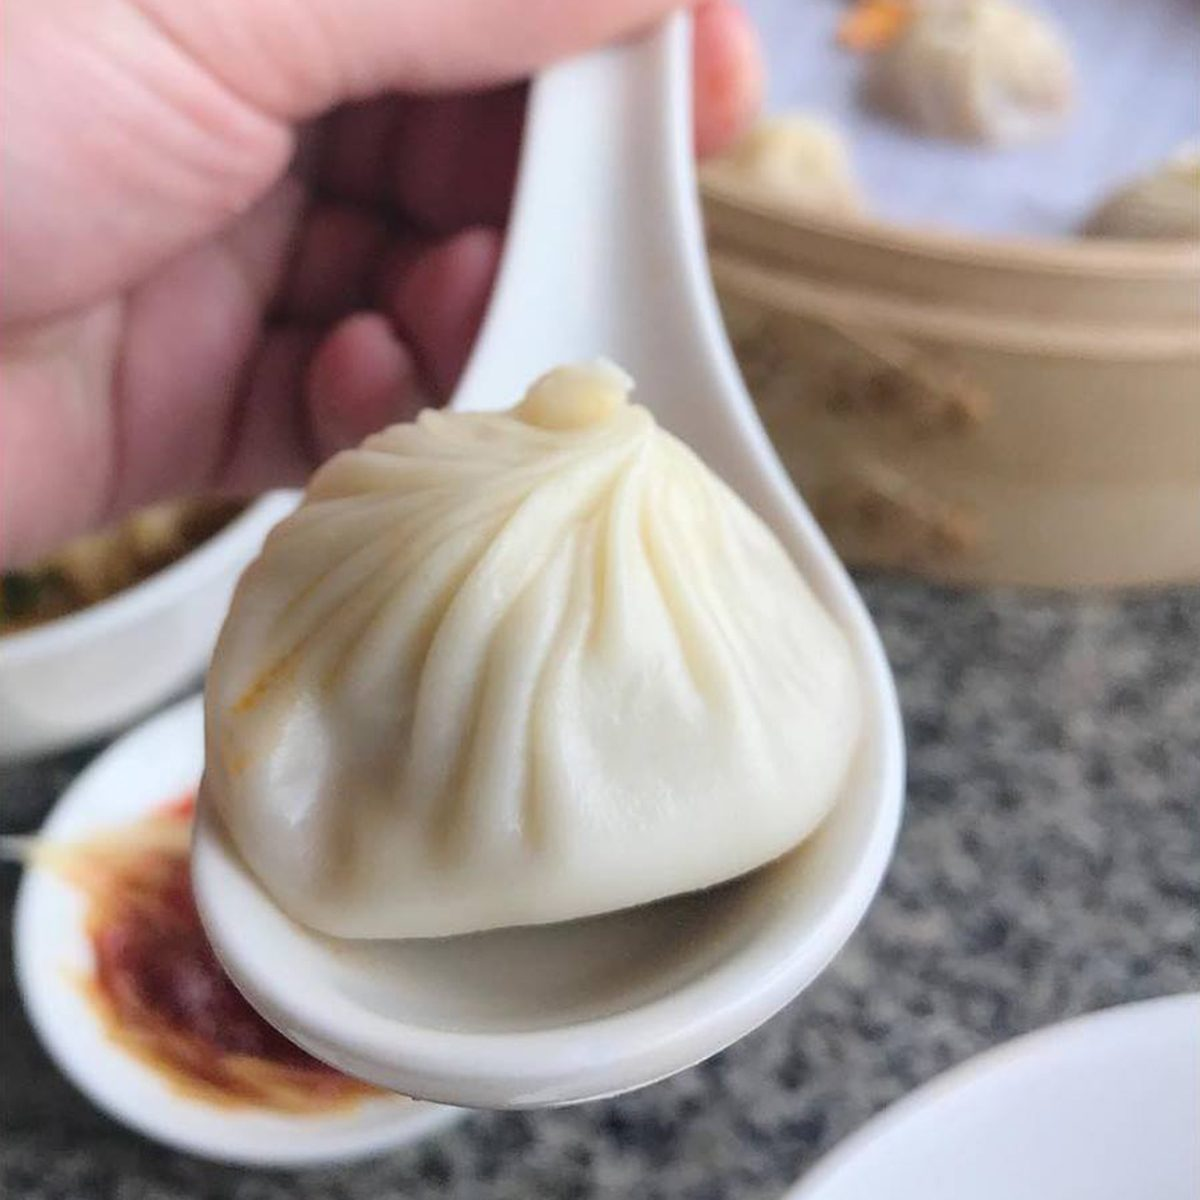 Close-up of a dumpling on a spoon